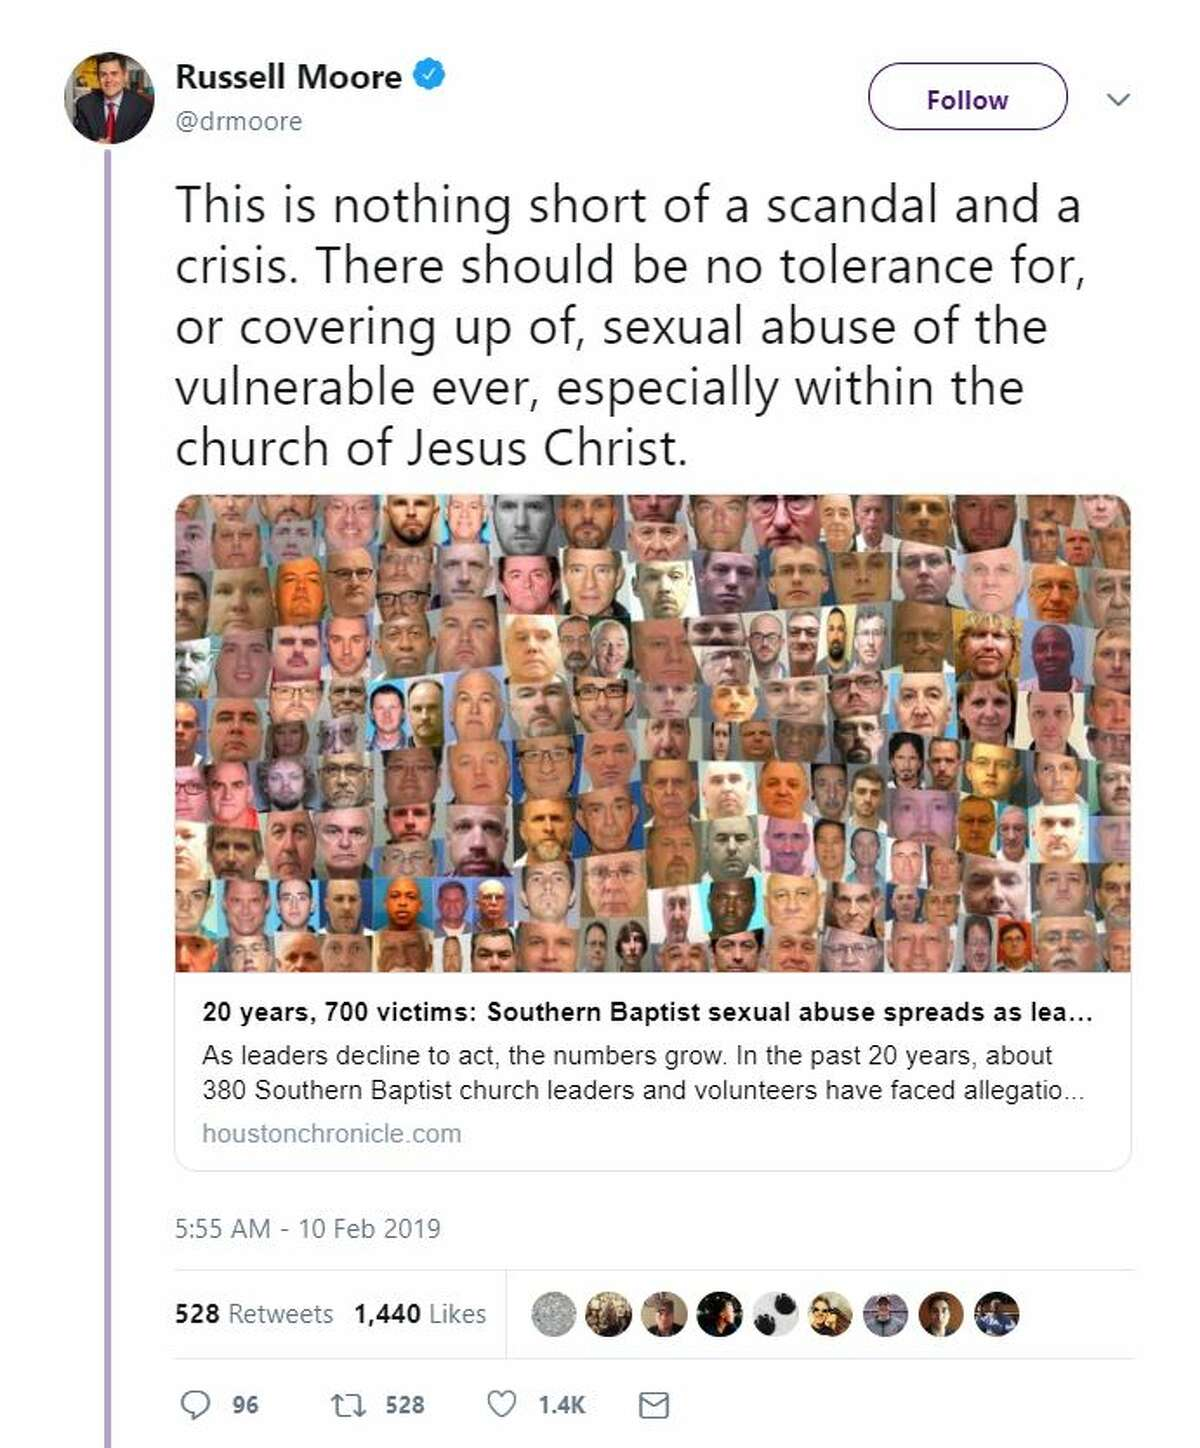 """""""This is nothing short of a scandal and a crisis. There should be no tolerance for, or covering up of, sexual abuse of the vulnerable ever, especially within the church of Jesus Christ."""" - @drmoore"""